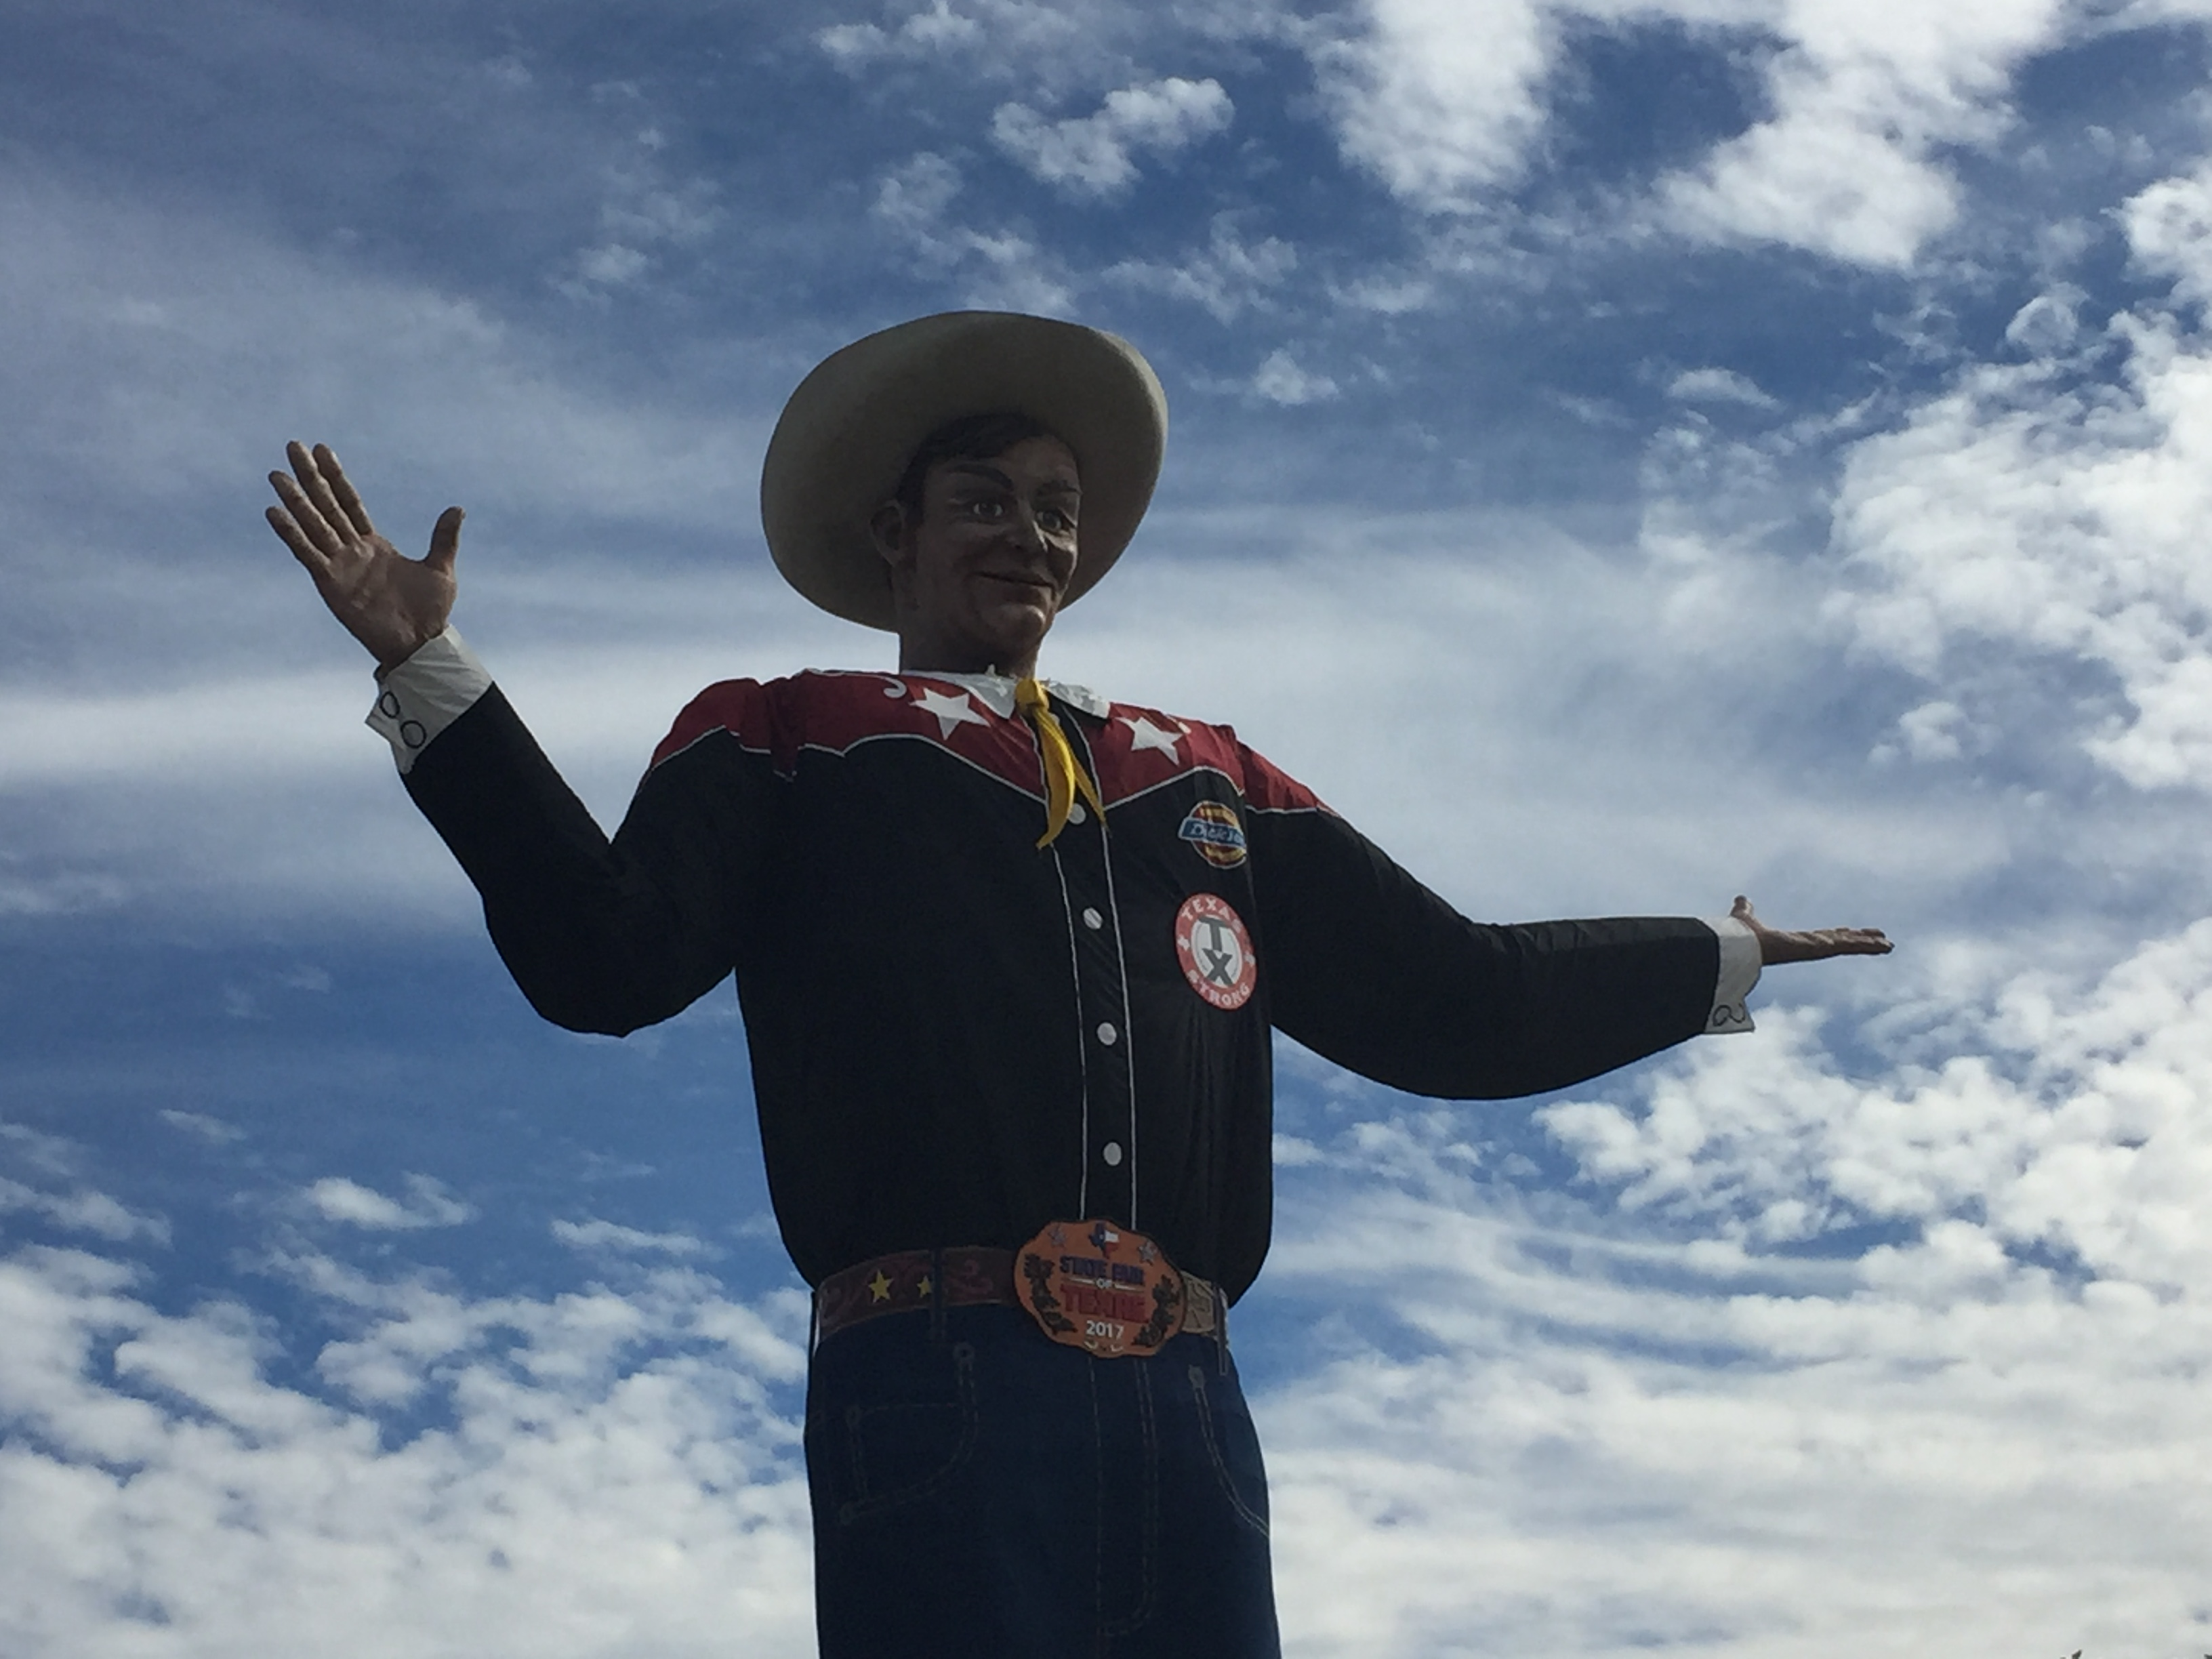 Big Tex at the State Fair of Texas 2017